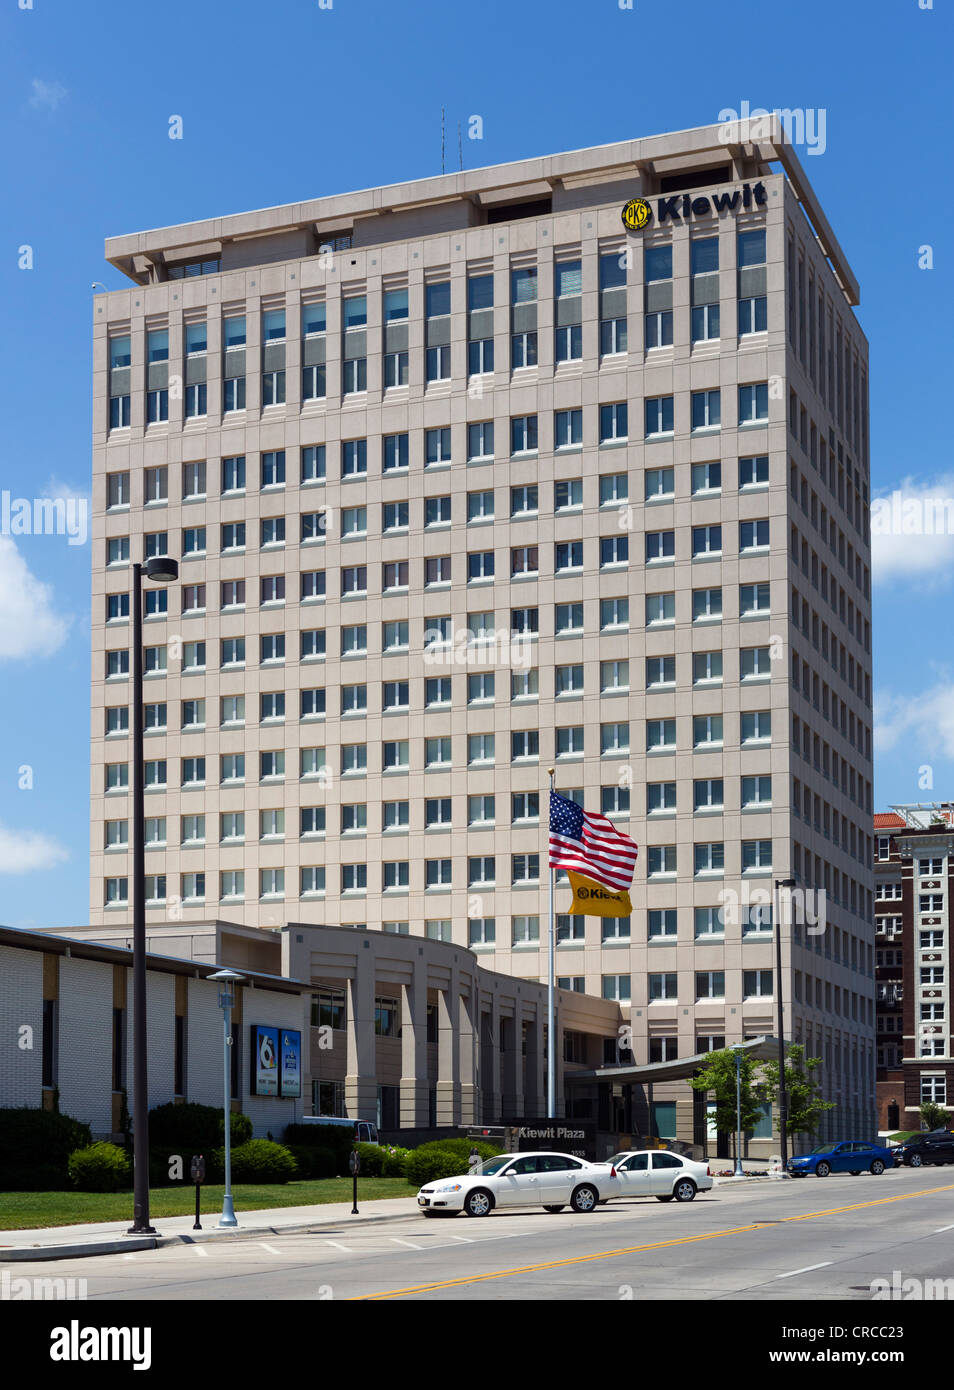 Building housing headquarters of Berkshire Hathaway, headed by multi-billionaire Warren Buffet, Farnam St, Omaha, - Stock Image